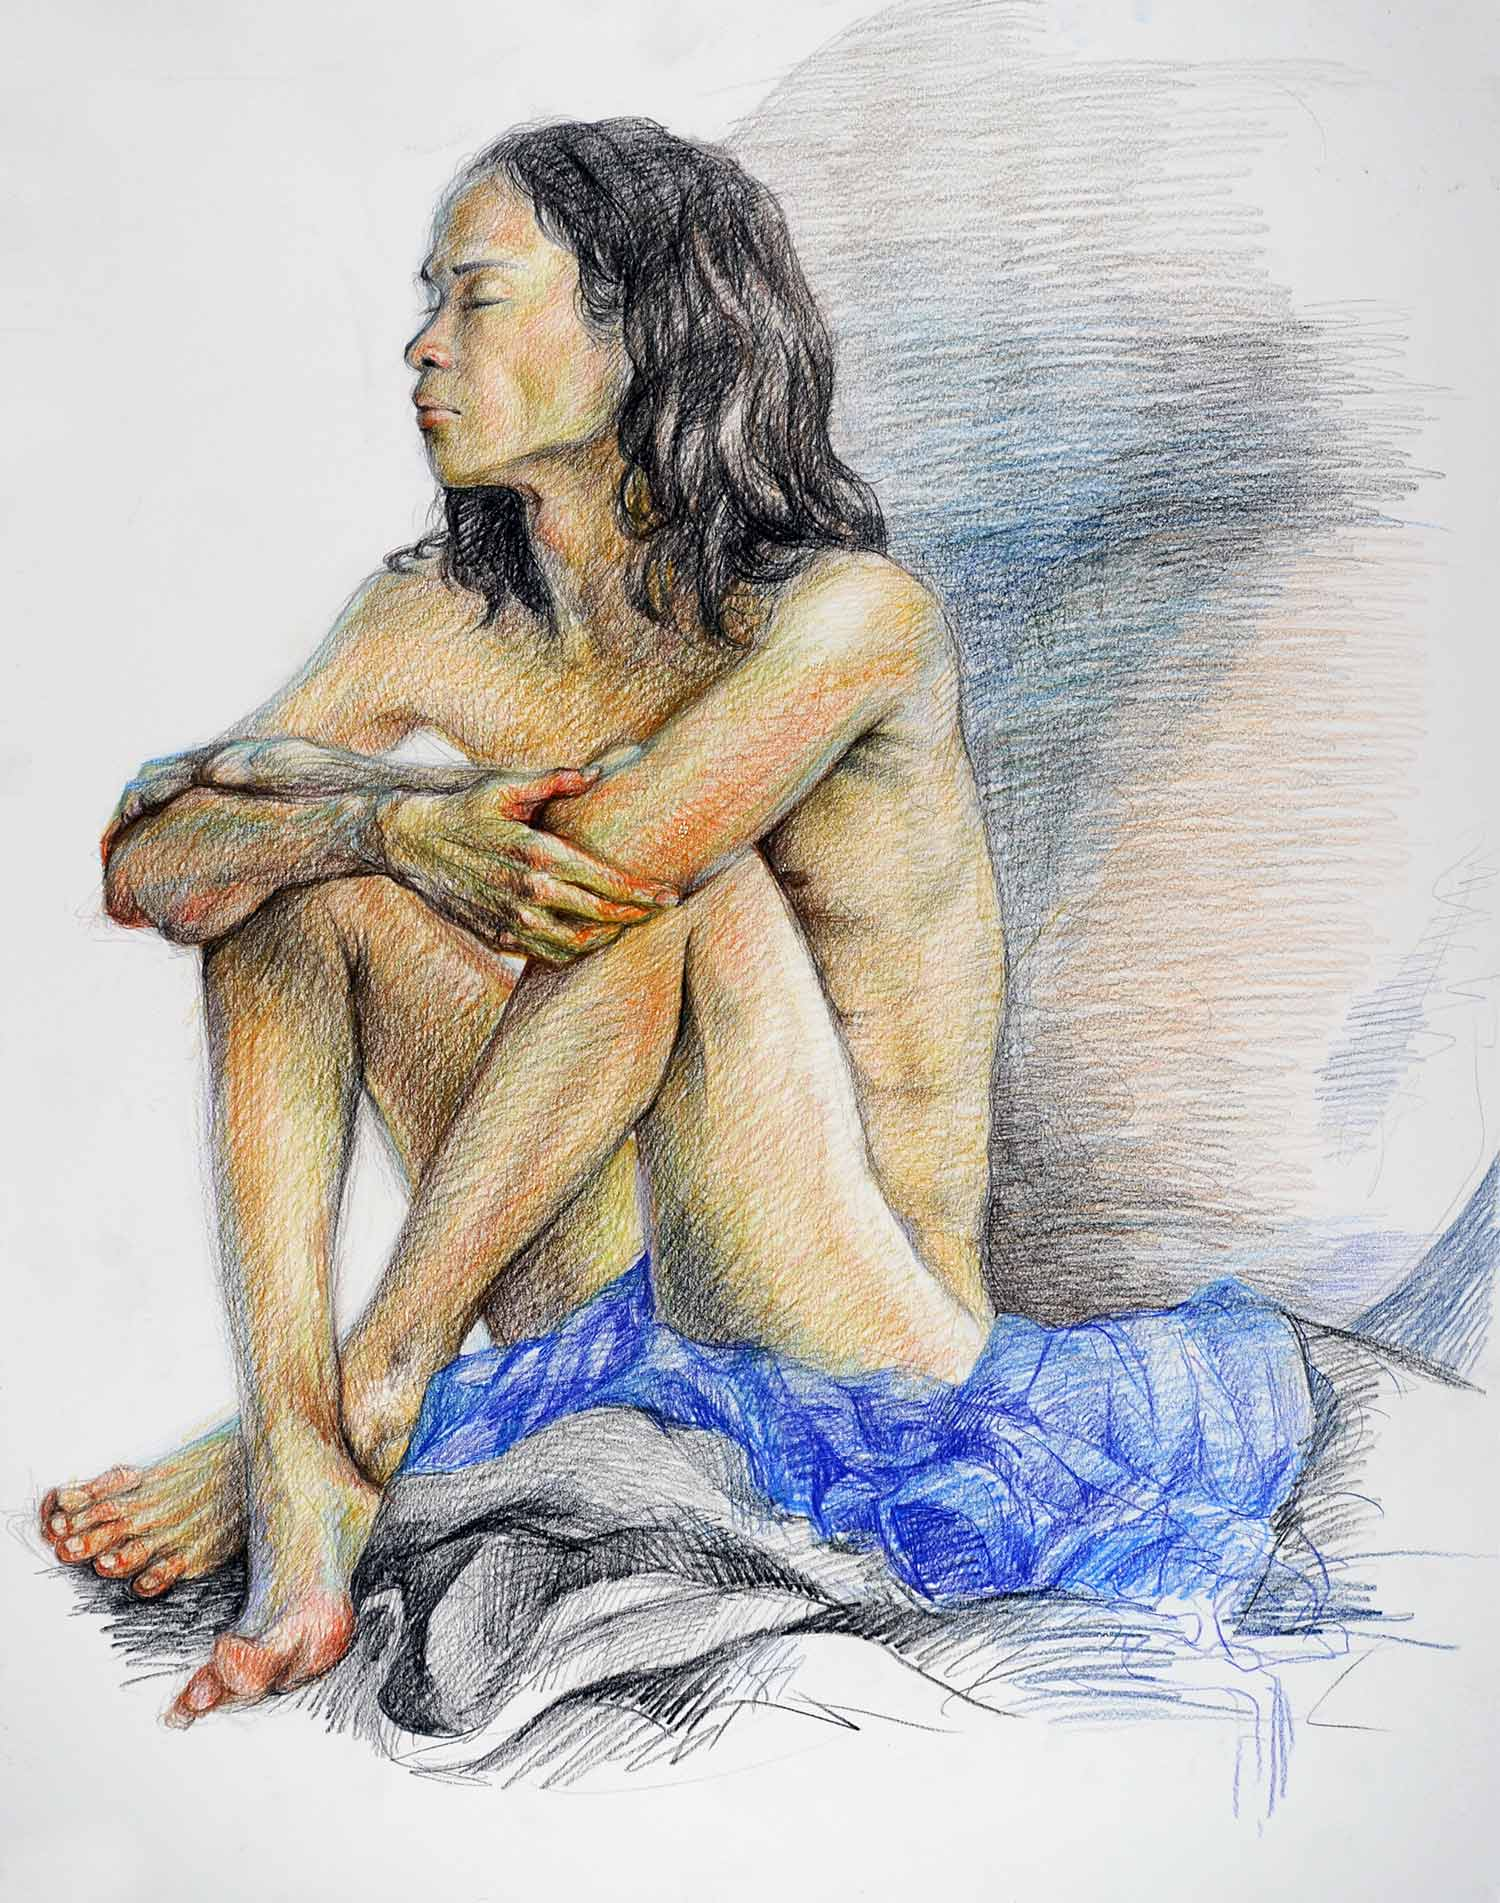 course-figure-drawing-works-05-v01-2018-08.jpg